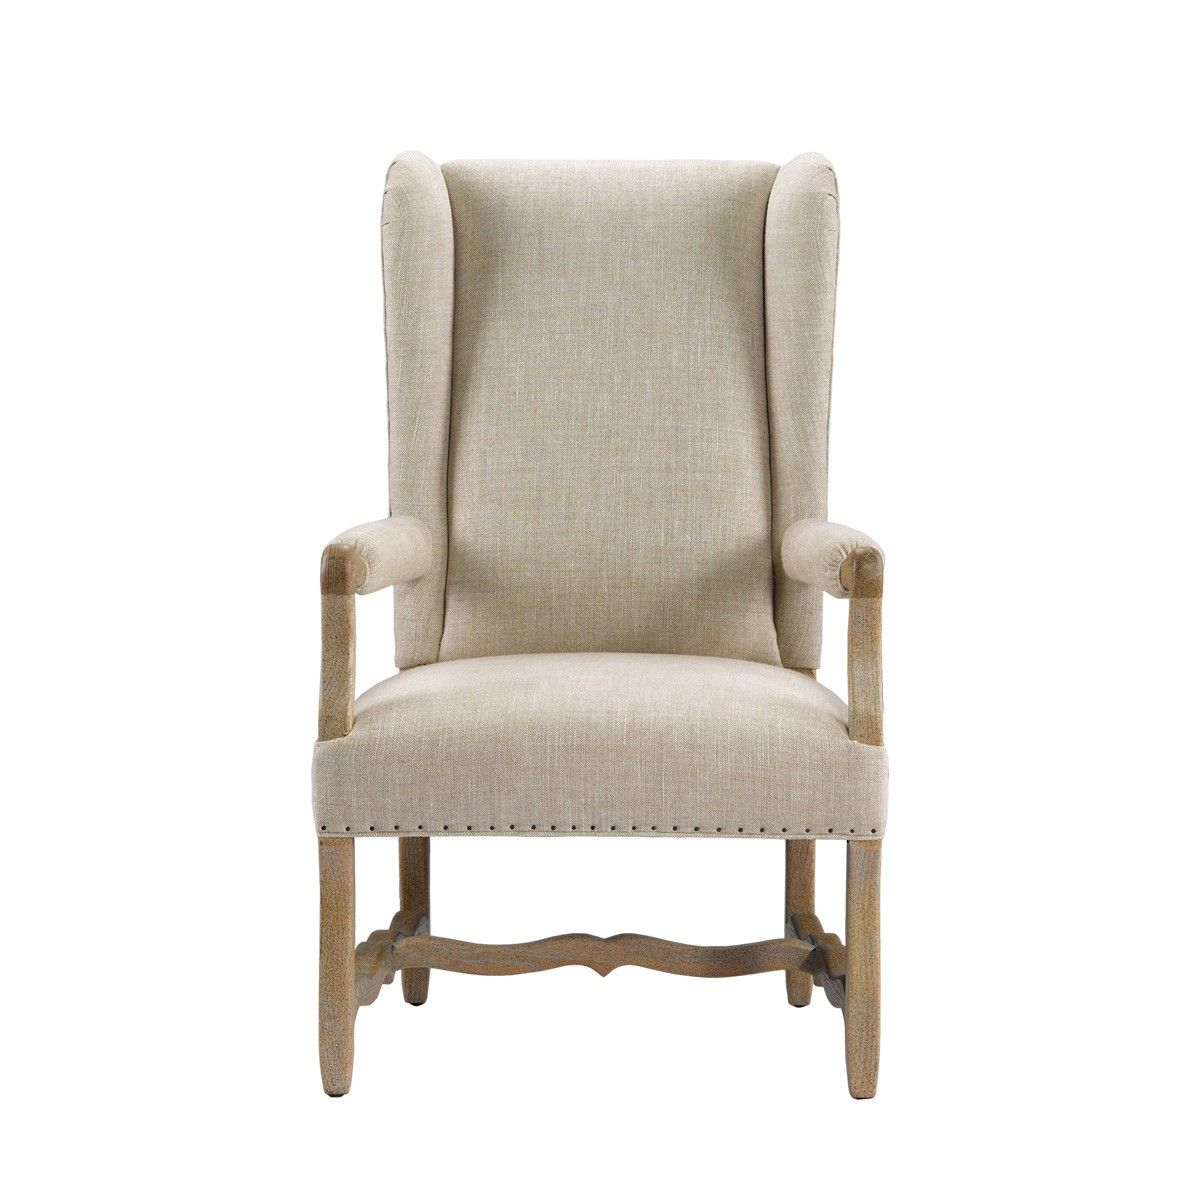 8826 1100 A015 Belgium Wing Wool Arm Chair W 27 5 D 30 5 H 47 5